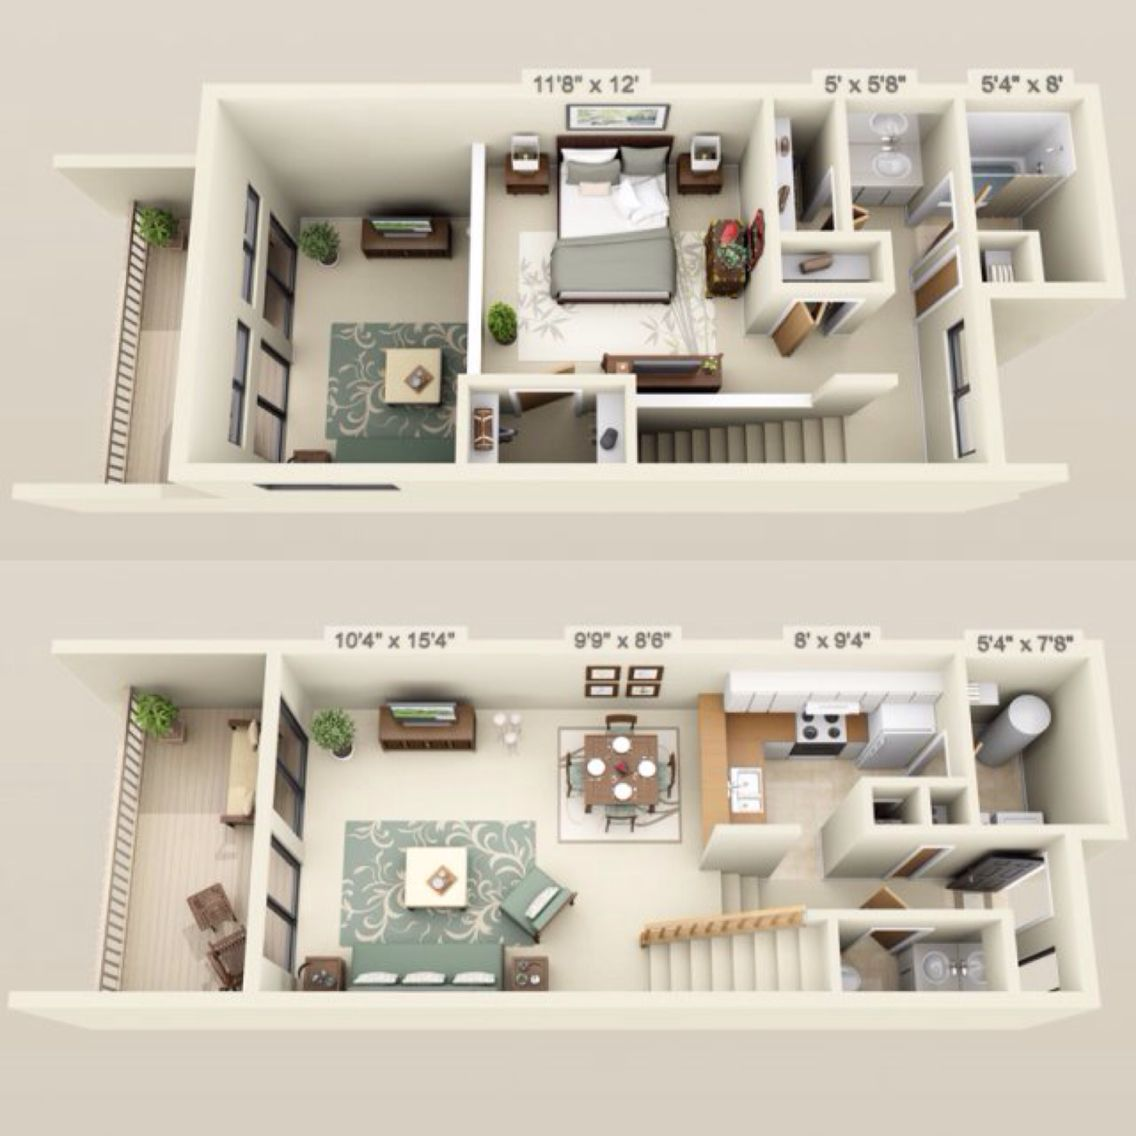 700 755 Rent 200 Dep 1 Bed 1 5 Baths 704 Sq Feet Apartment Floor Plans Small House Plans Sims House Plans